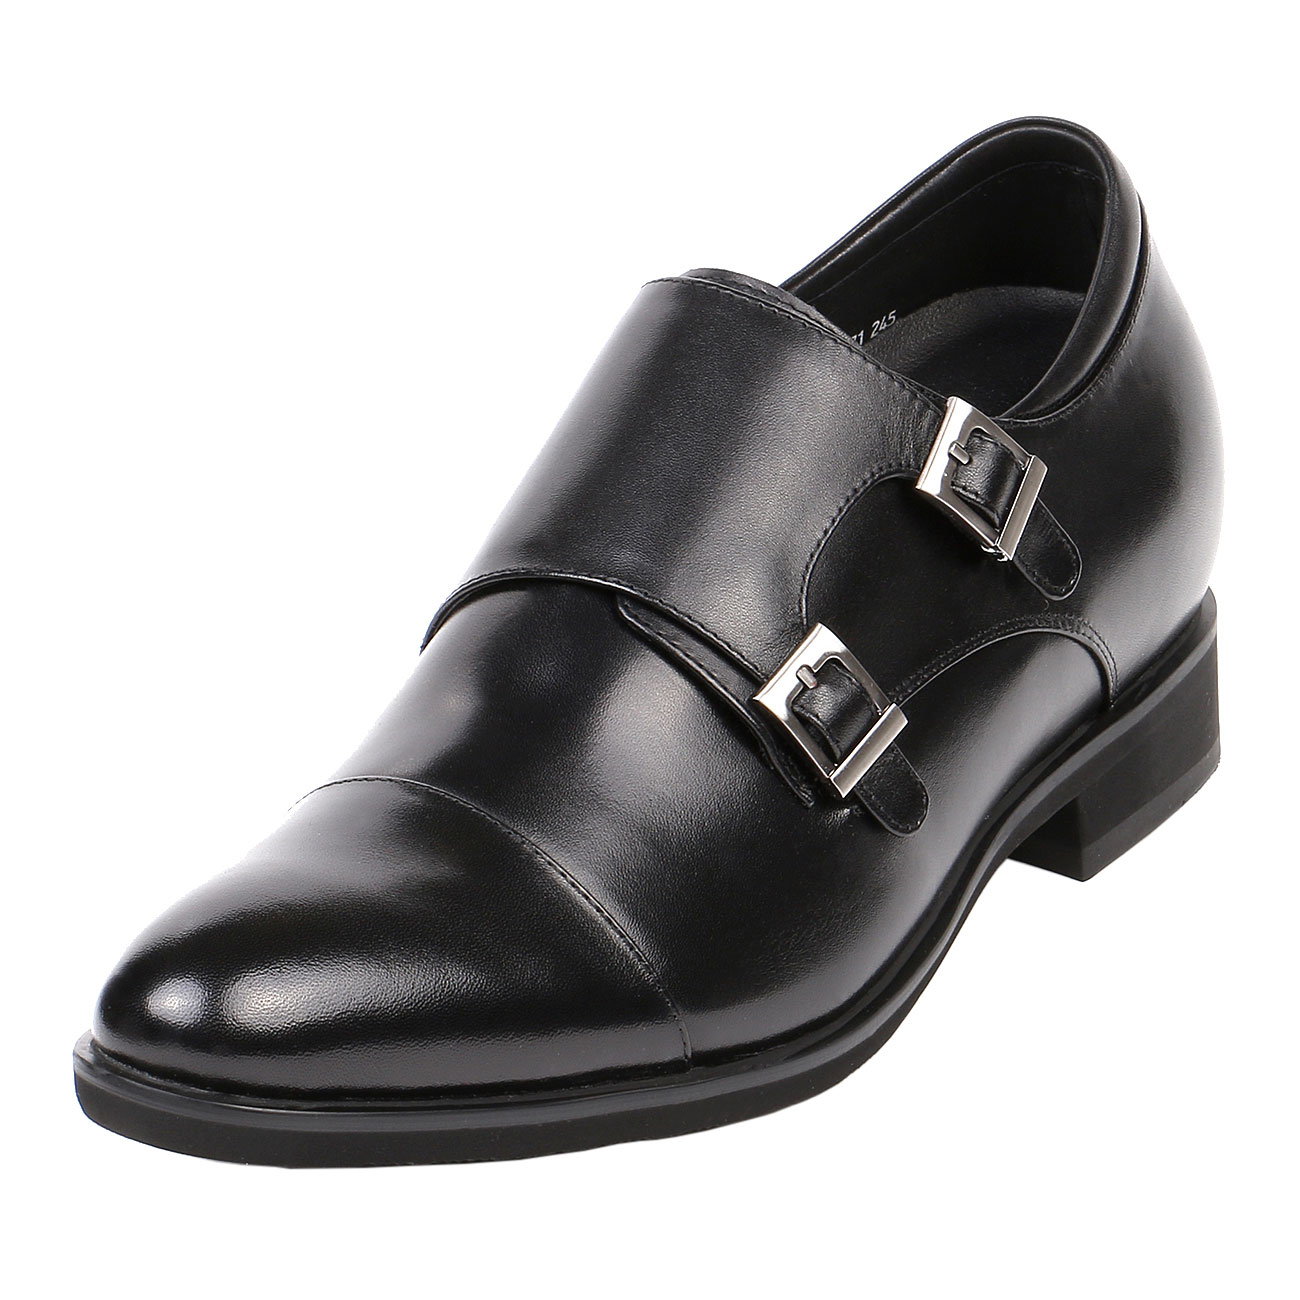 Monk Strap Dress Shoe Cap Toe 2.8